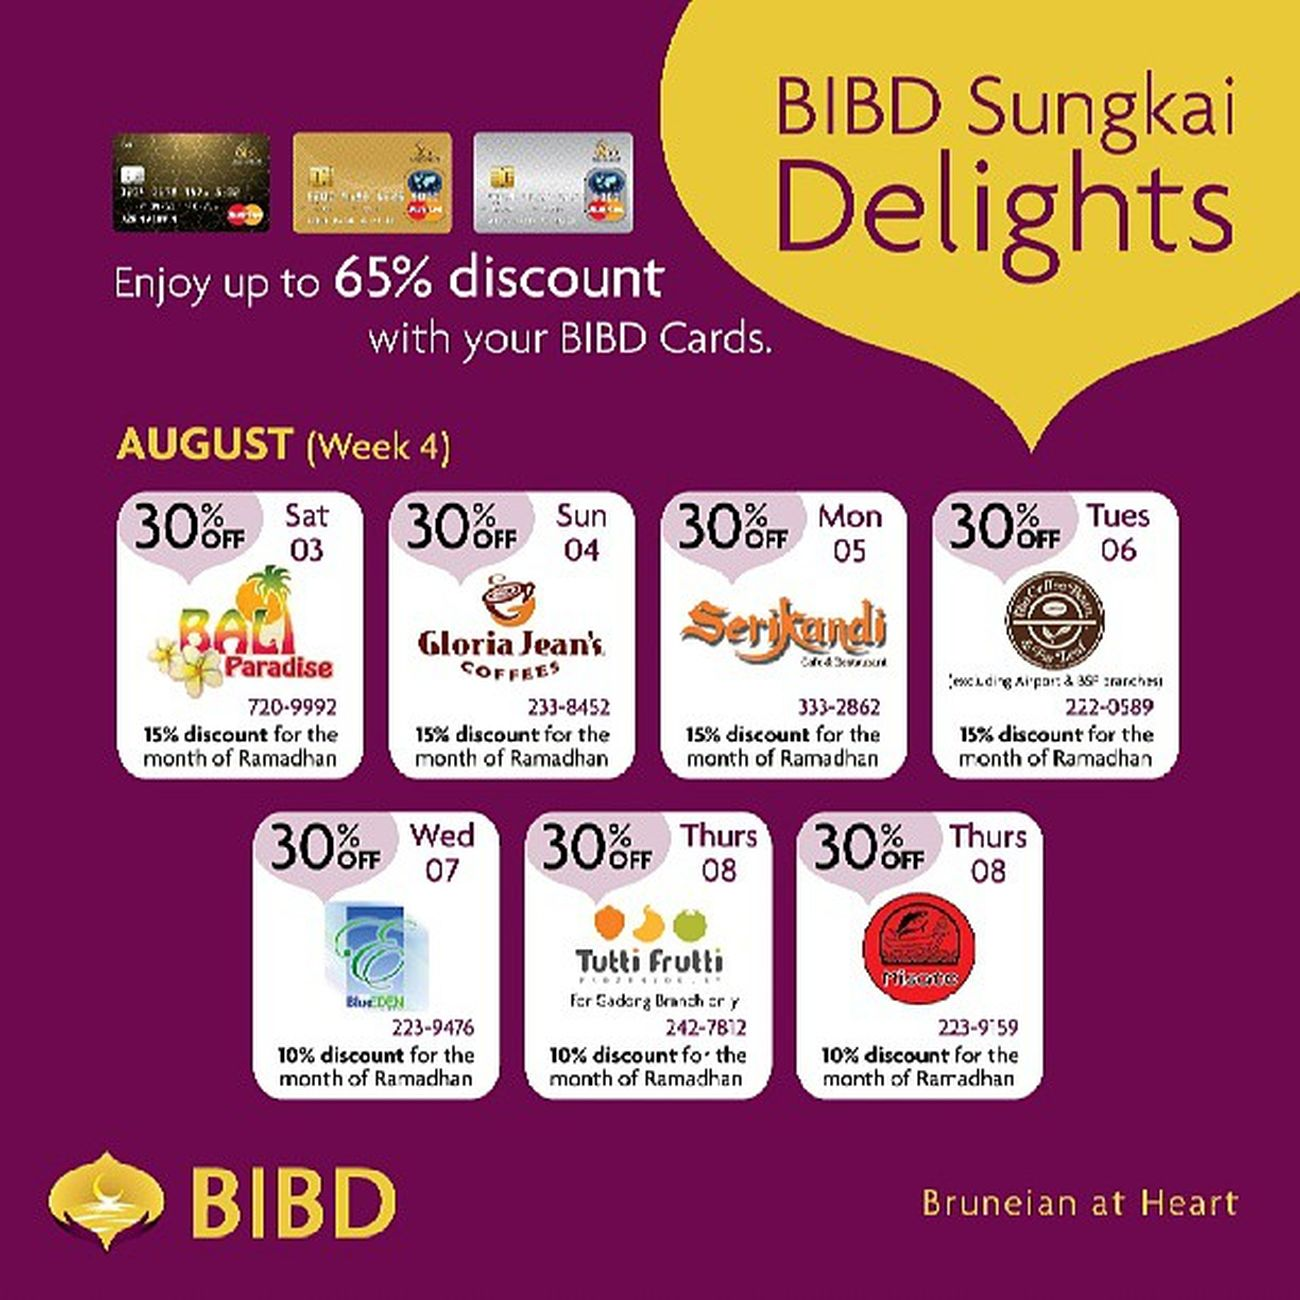 Final week of Bibd SungkaiDelights featuring awesome discounts at GJC, @coffeebean_brunei, and Misato among others! Lovefoodhatewaste Yummyinmytummy Ramadhan Sungkai Brunei InstaBruDroid Andrography